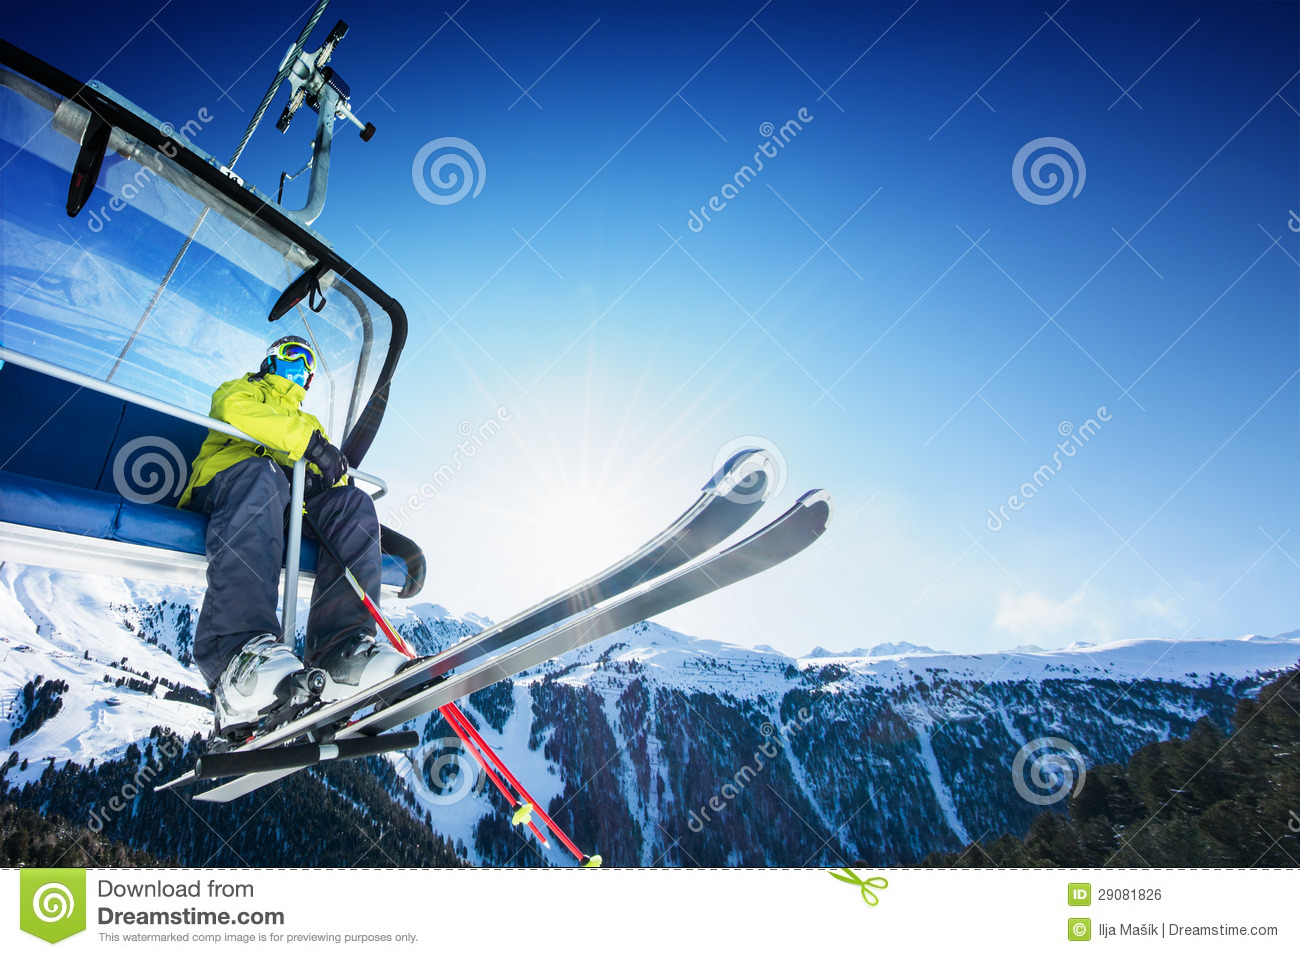 Download Skier Siting On Ski-lift - Lift At Sunny Day And Mountain Stock Photo - Image of sitting, lpen: 29081826